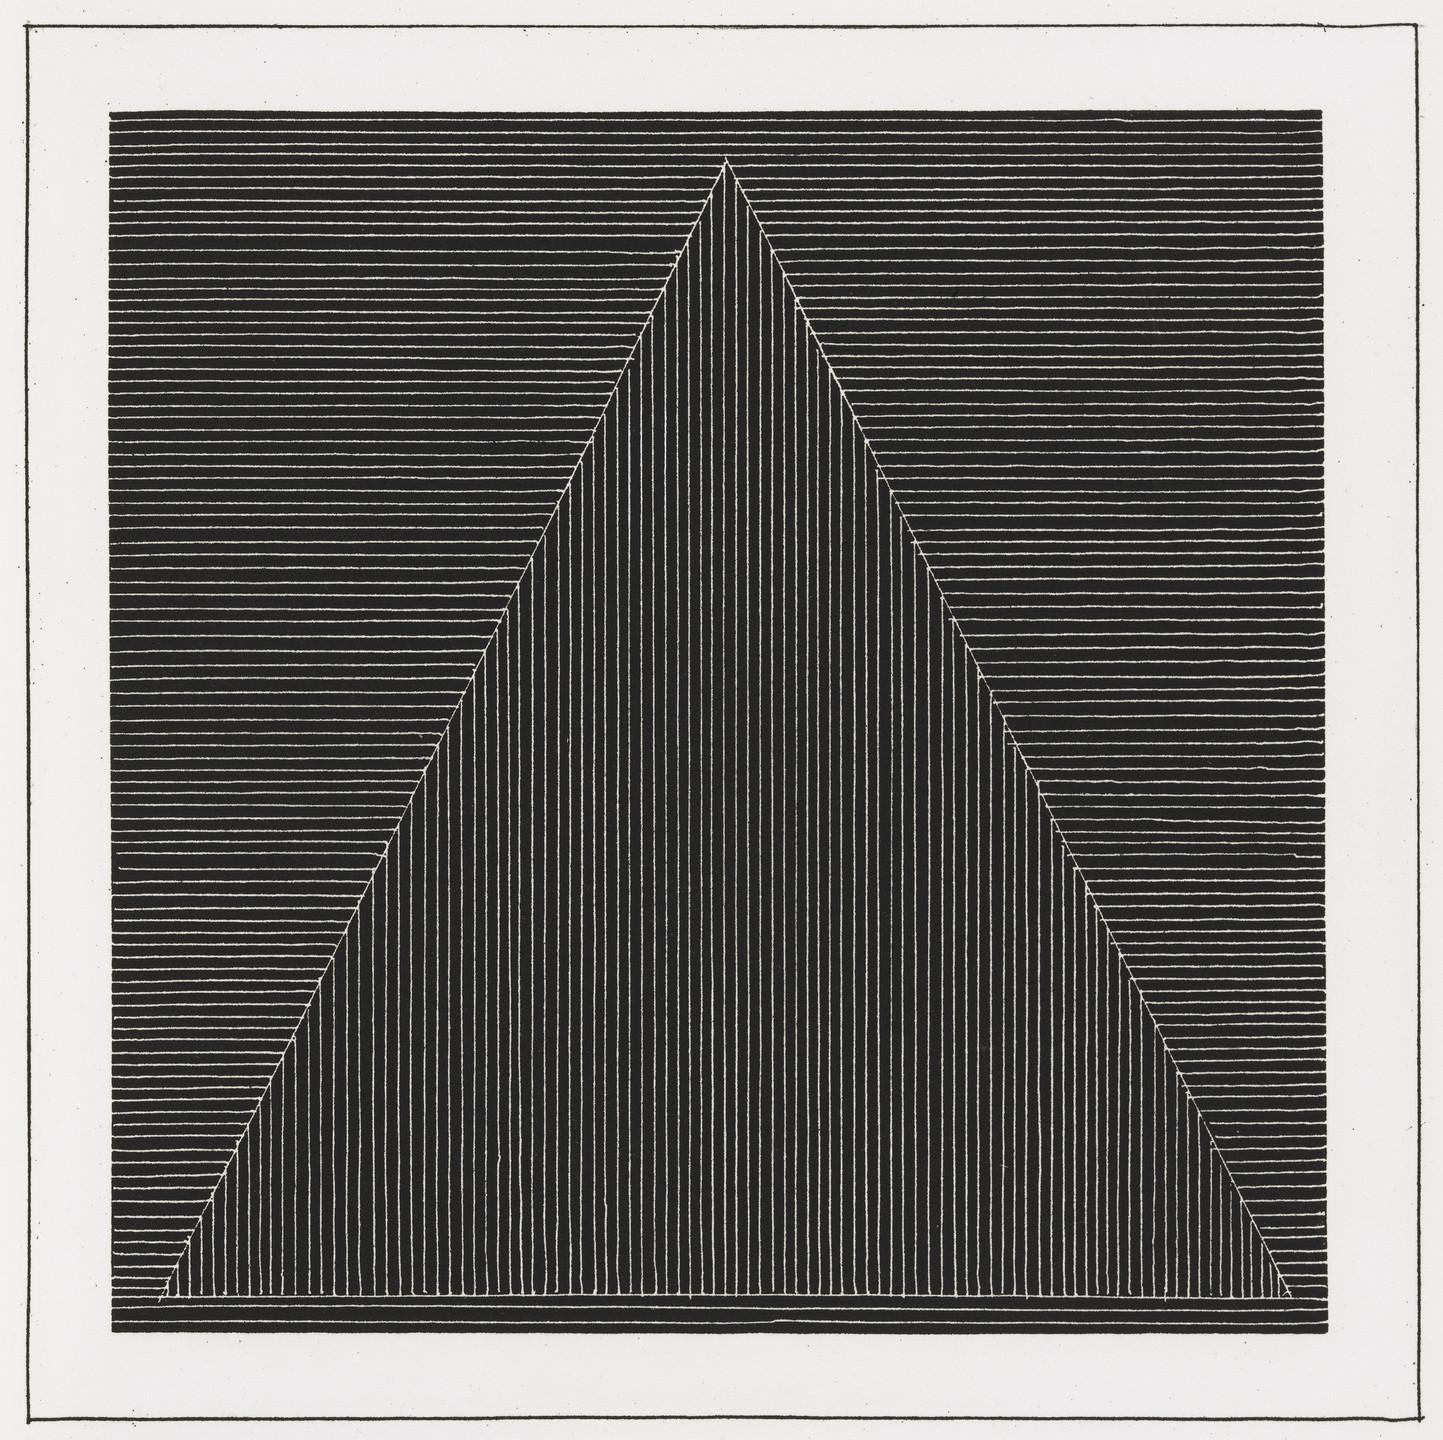 Sol LeWitt. Plate (folio 4) from Six Geometric Figures and All Their Combinations, Volume I. 1980